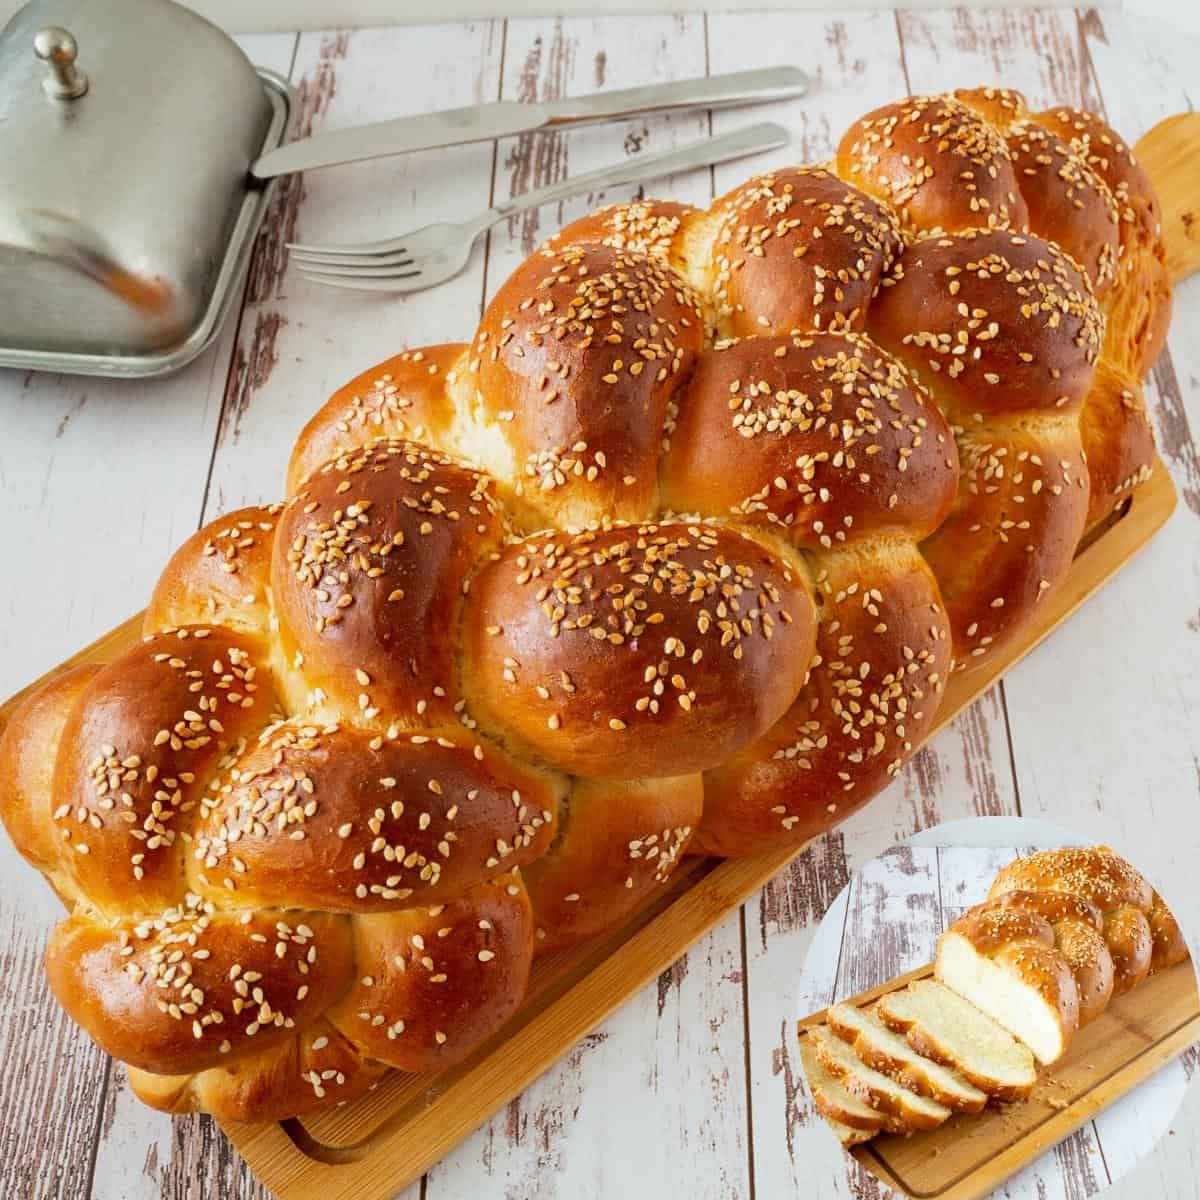 A six braid challah on wooden table.